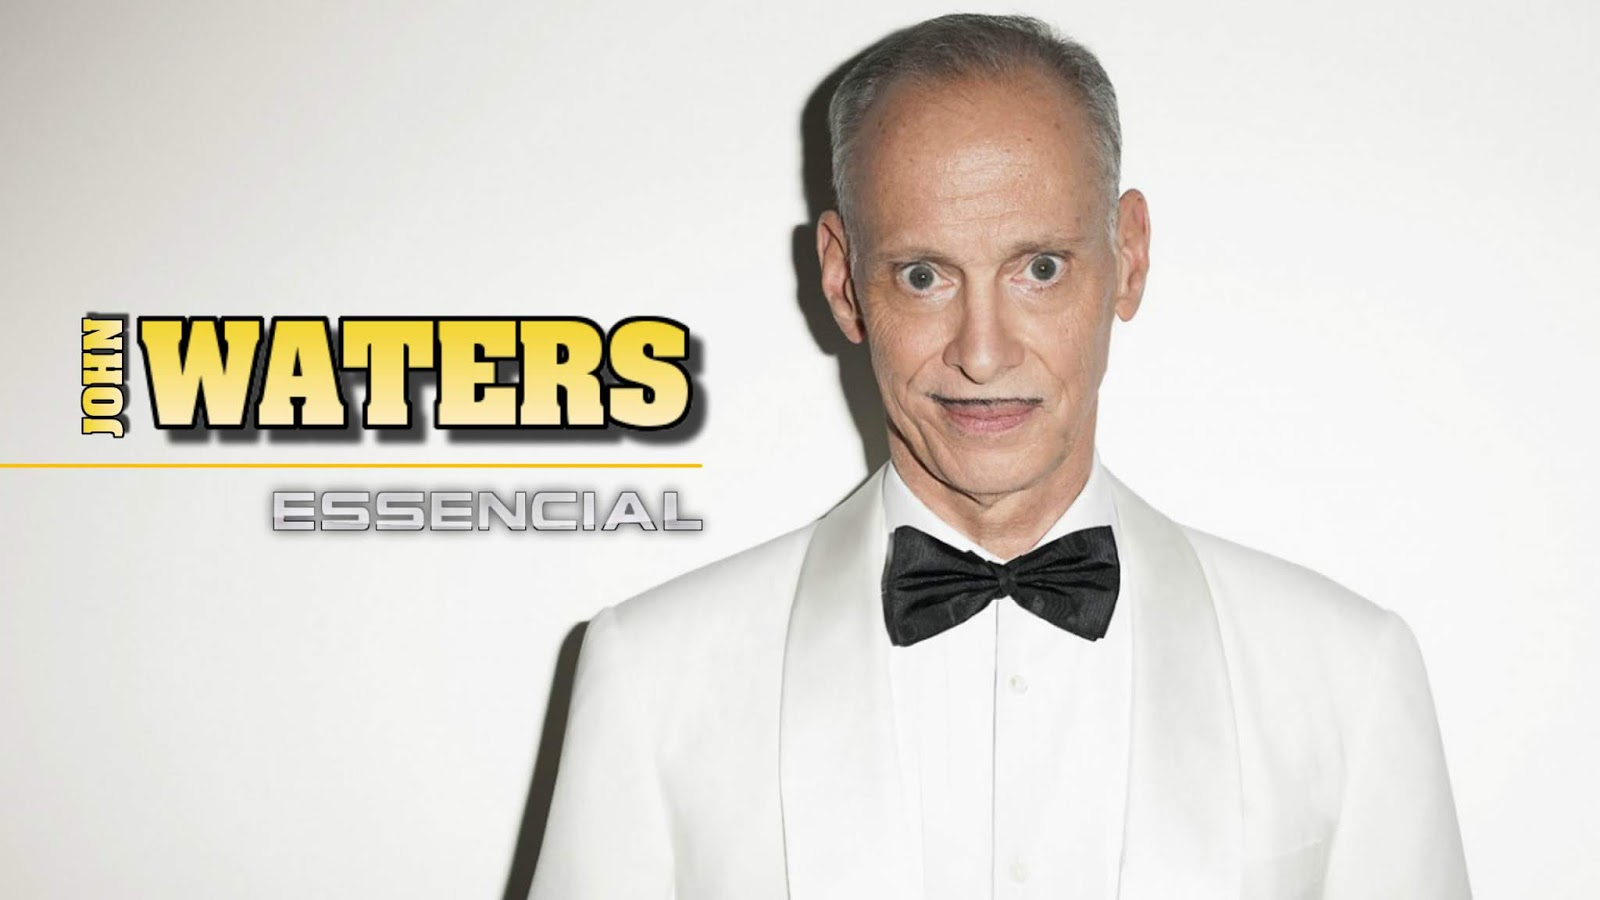 JOHN WATERS - 10 FILMES ESSENCIAIS